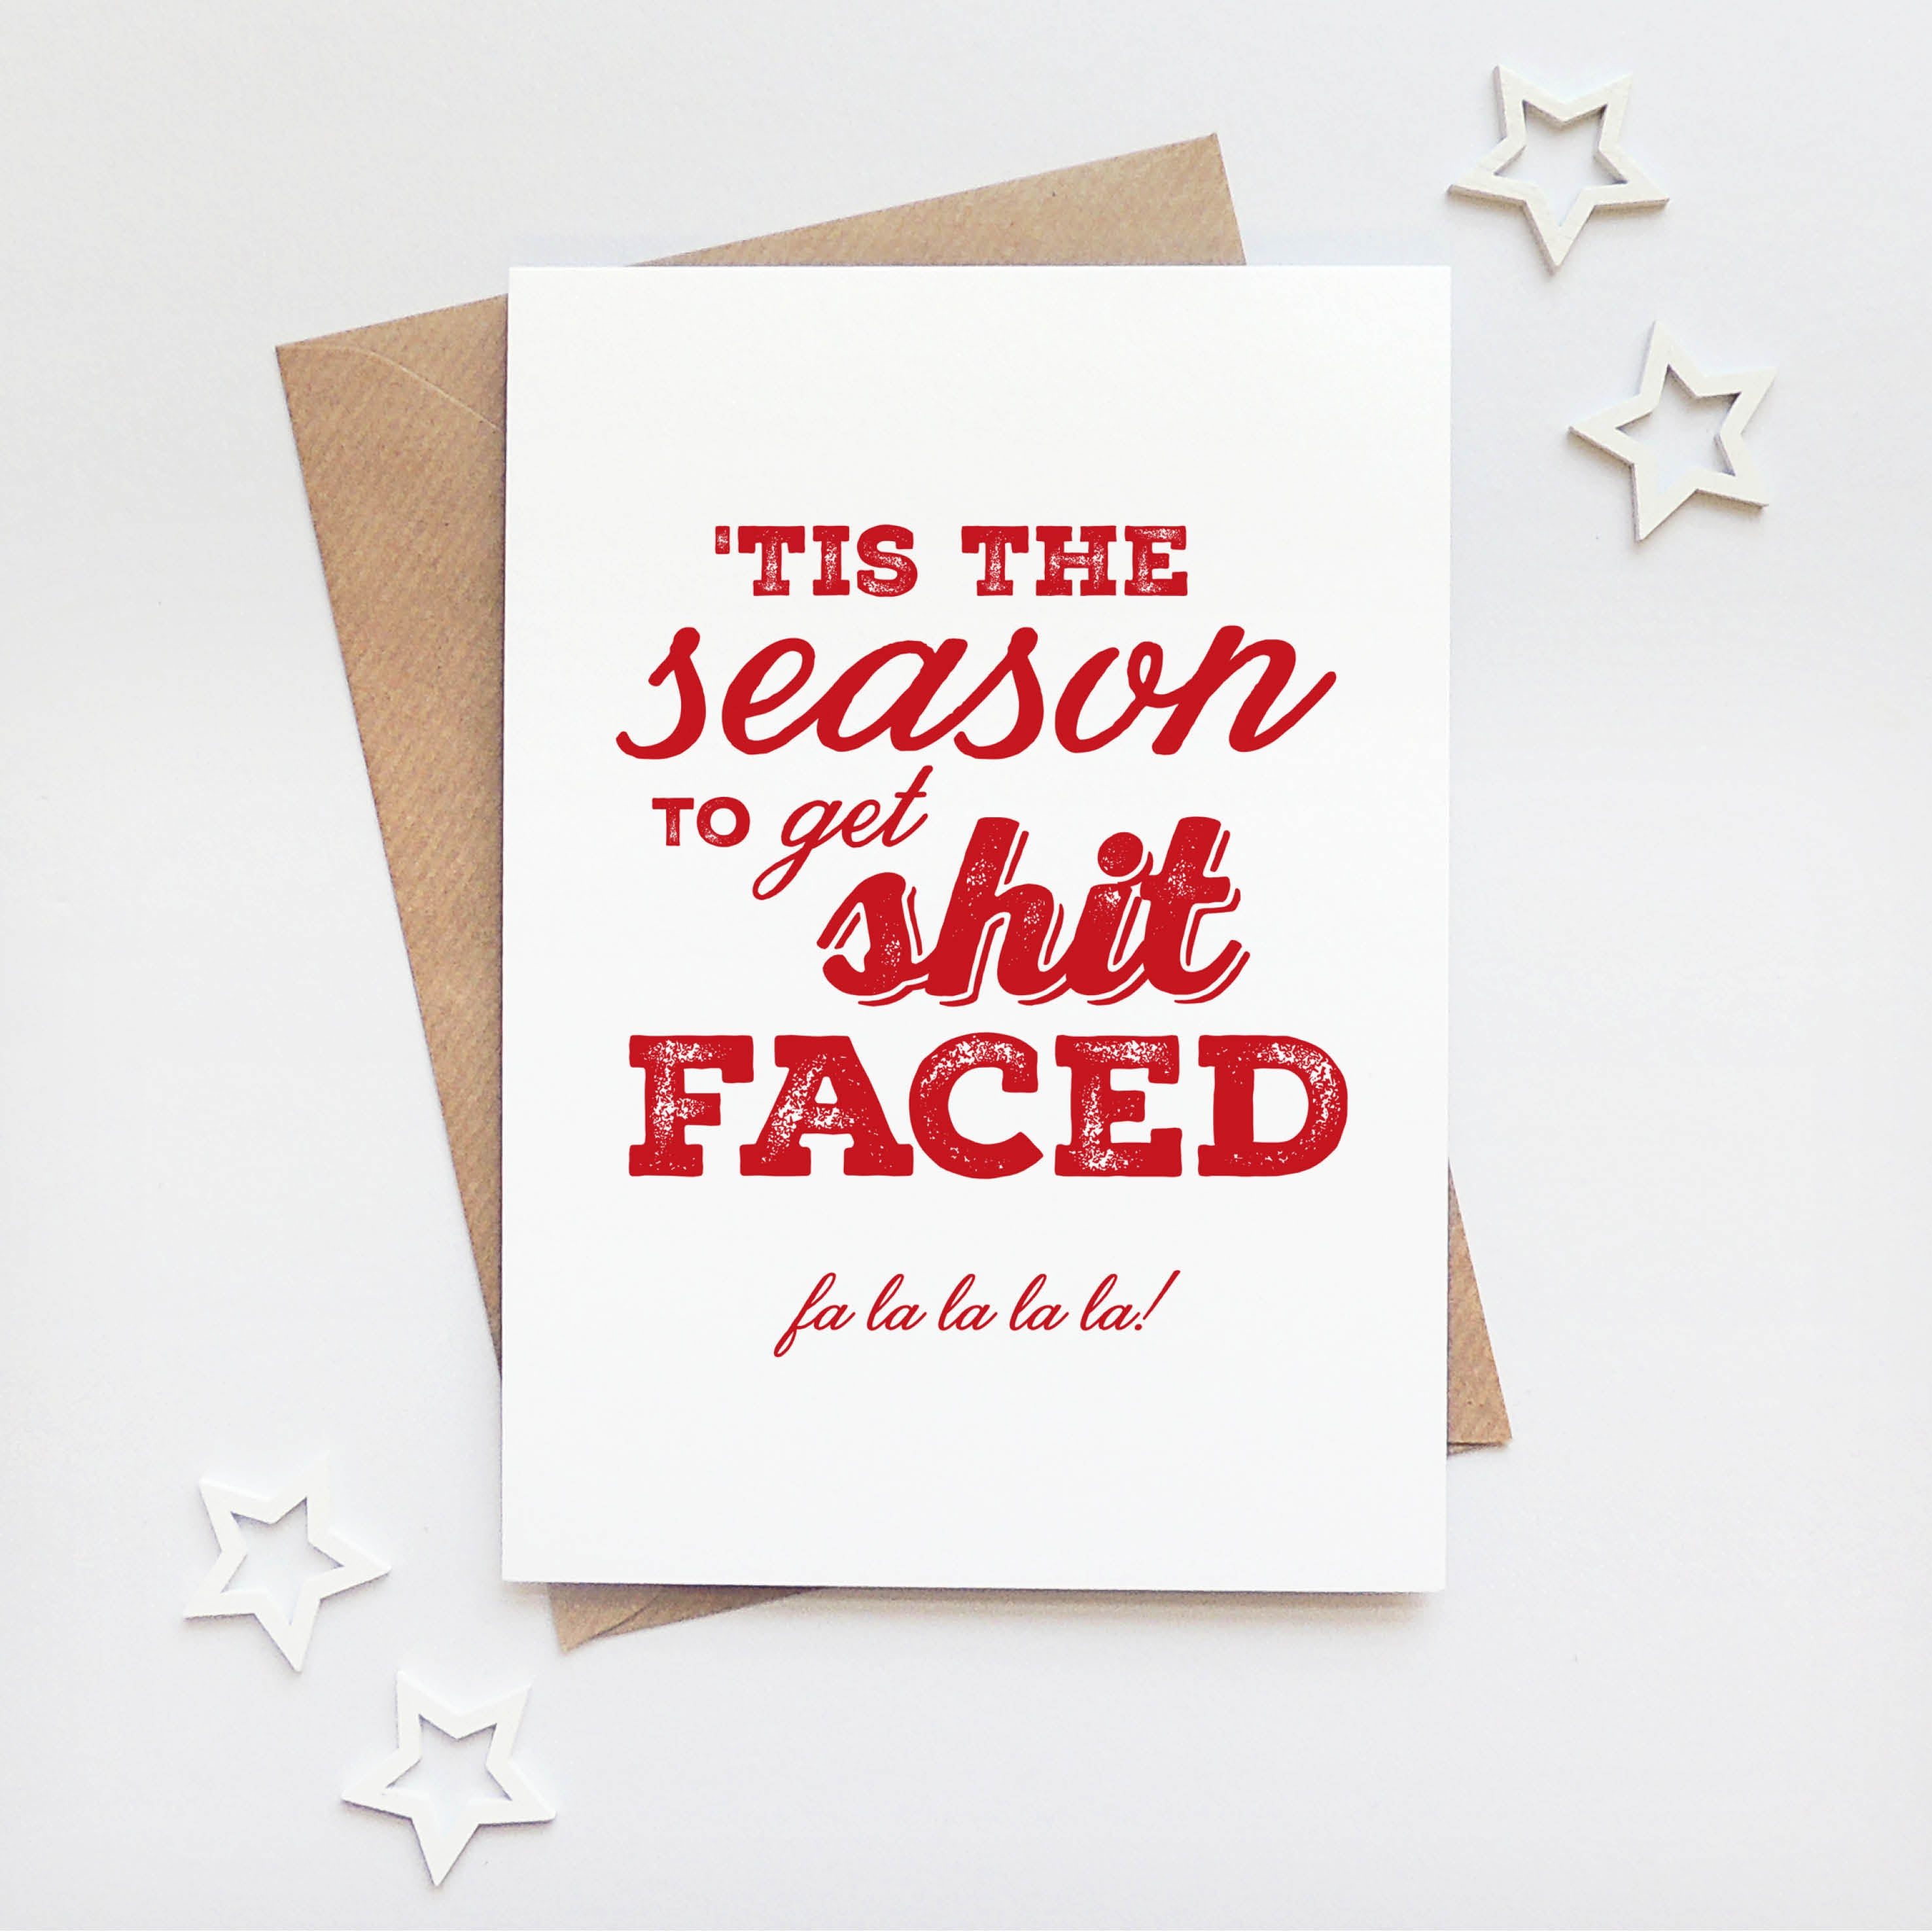 'Tis the season to get shit faced' funny christmas card